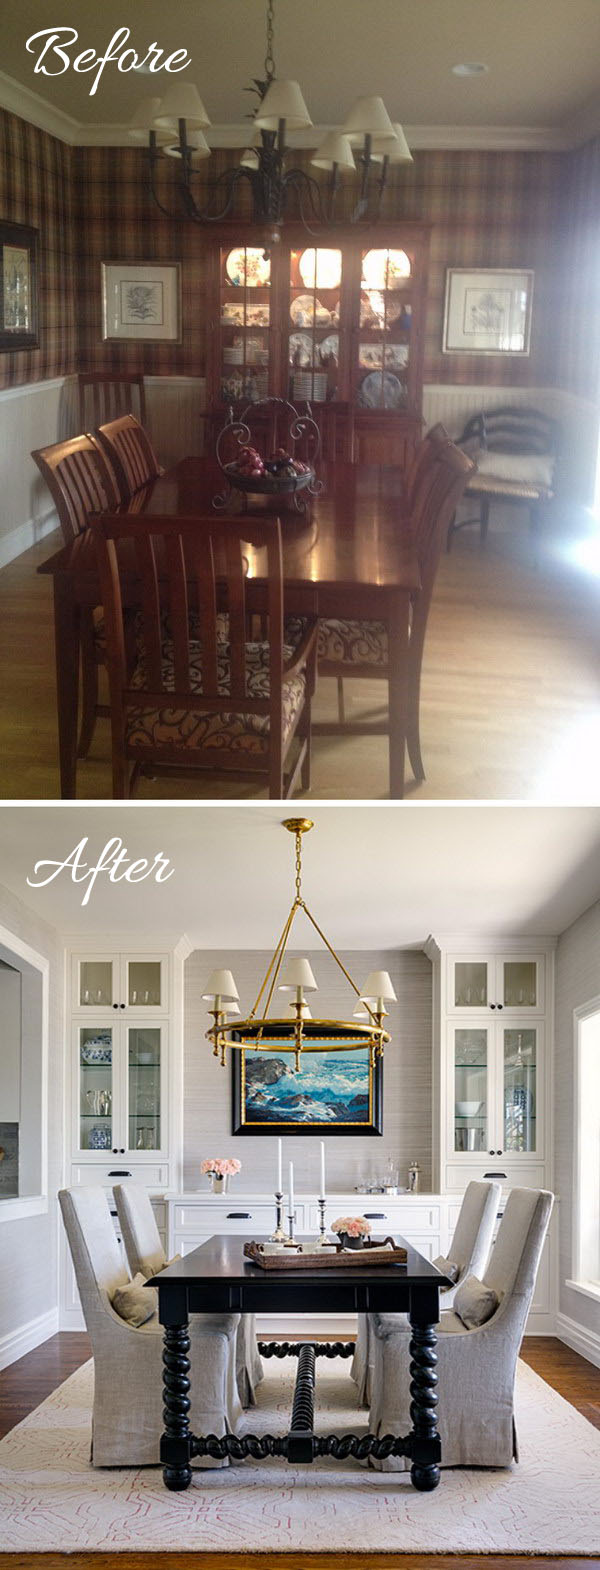 Dining Room Renovation.